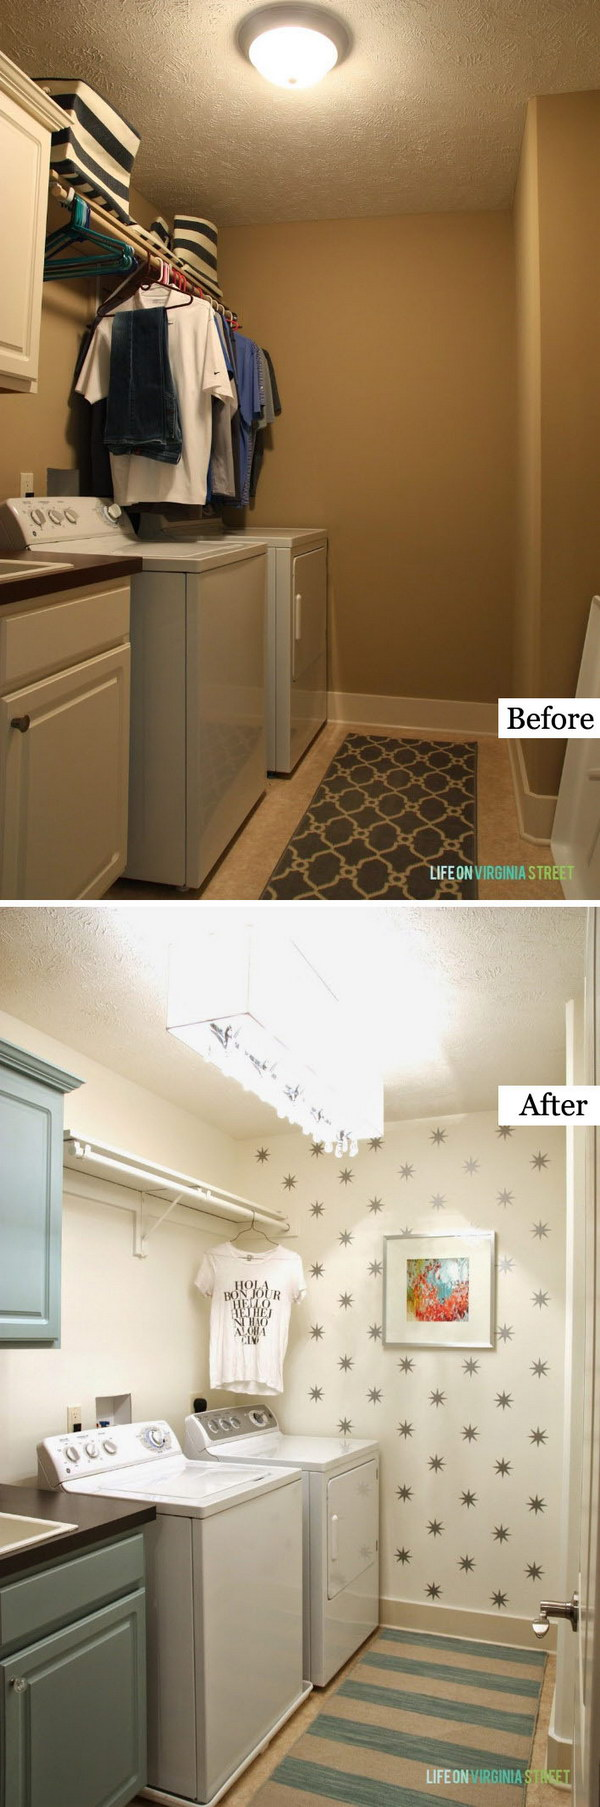 A Bright, Fresh DIY Laundry Room Makeover .